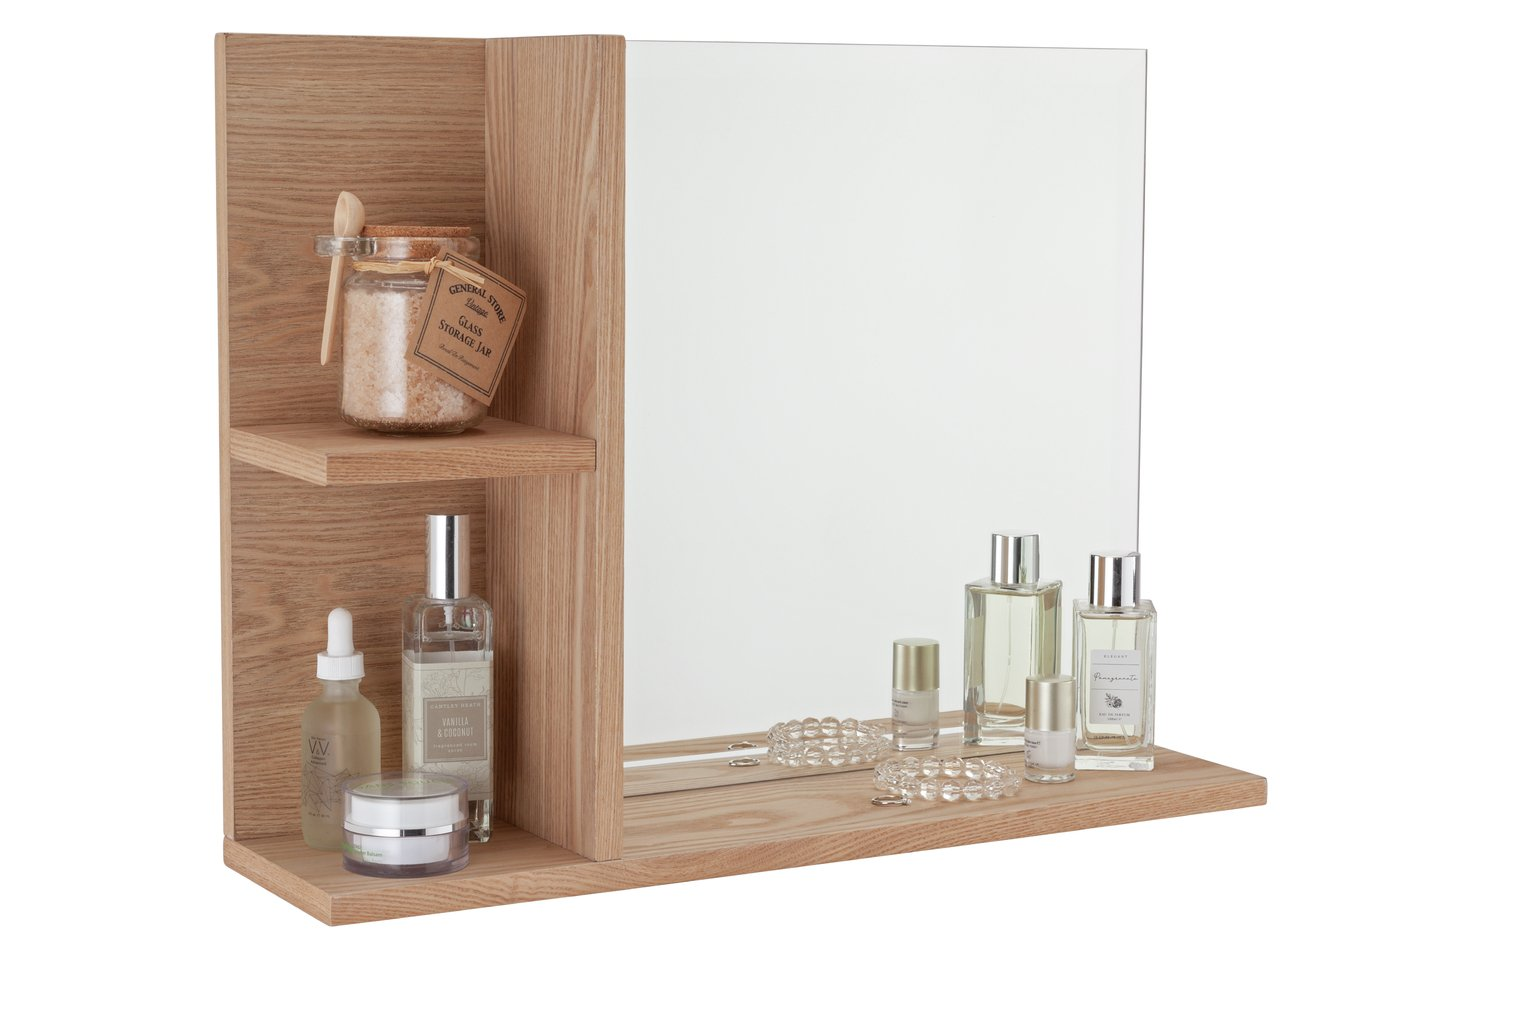 Argos Home Inhabit Wall Mirror with Shelves